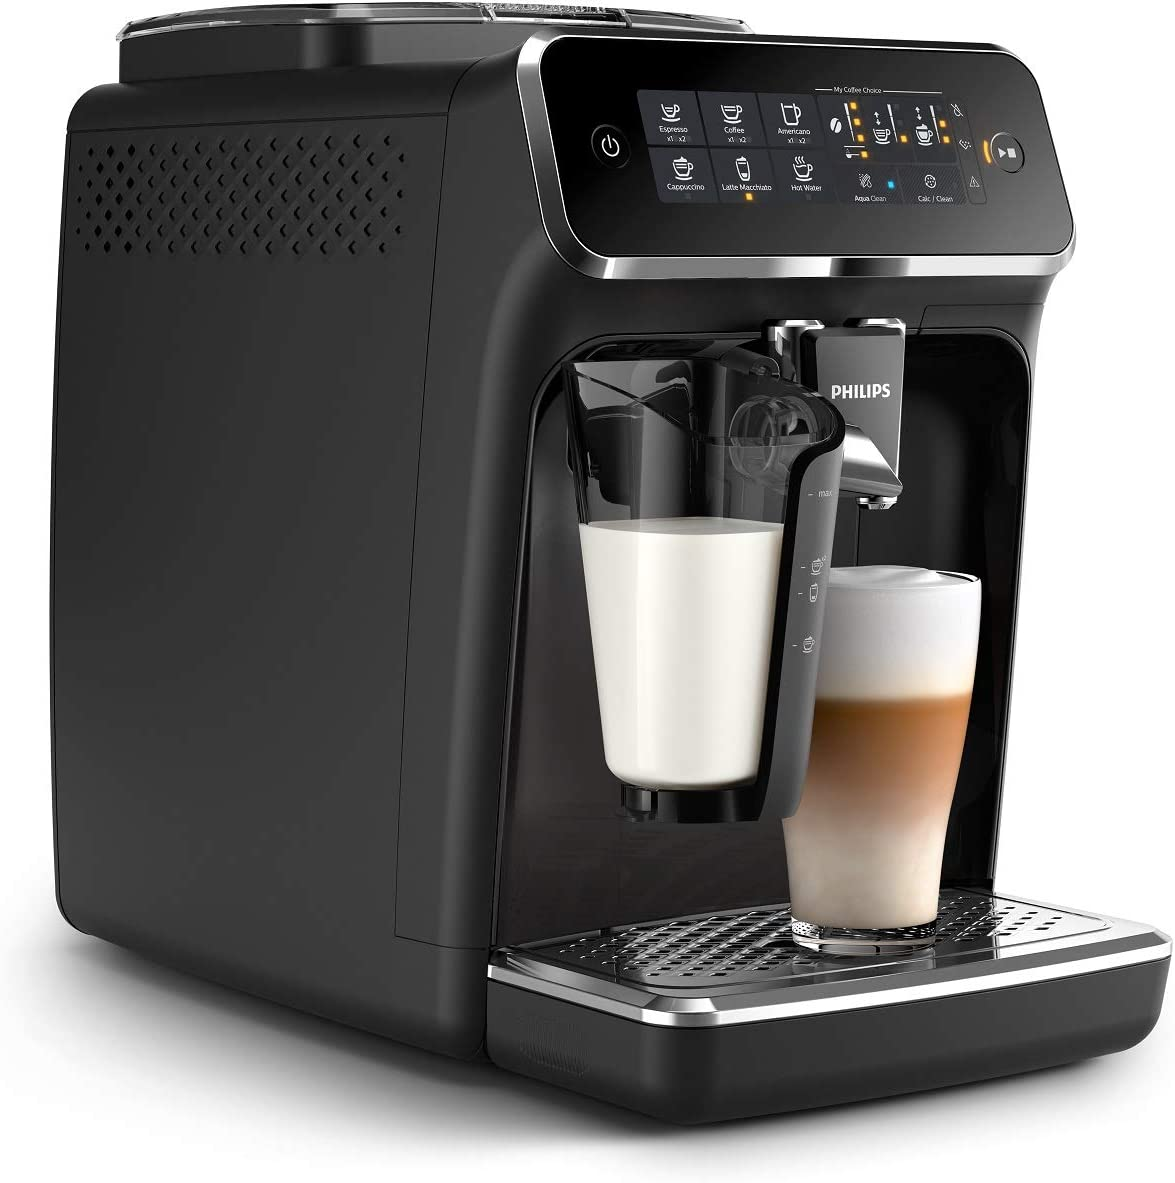 Philips 3200 Series Fully Automatic Espresso Machine w/ LatteGo, Black